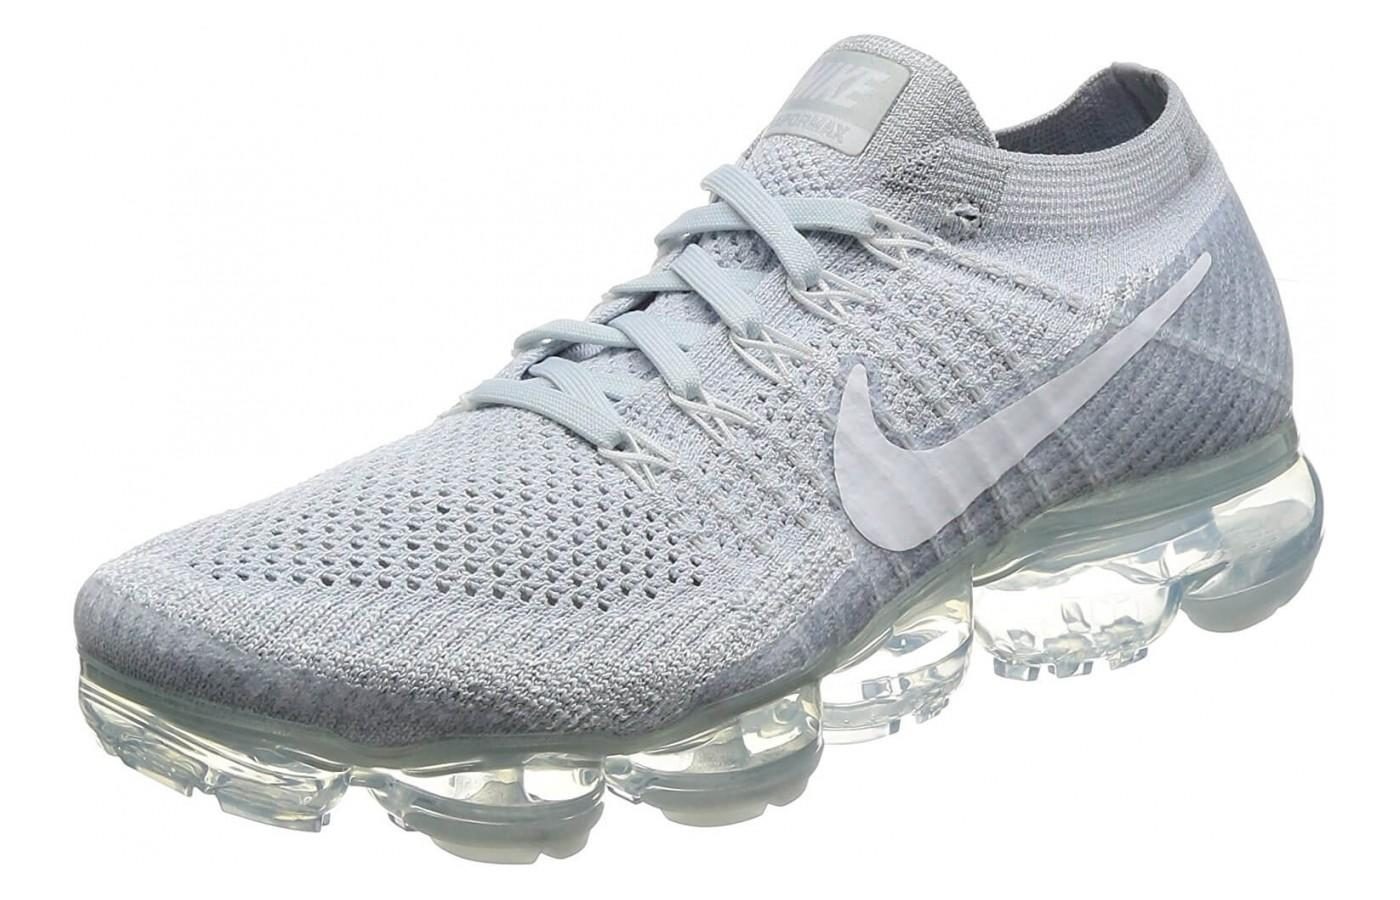 c08868046499d Nike Air Vapormax Flyknit. The platinum coloring and unique design help this  shoe stand out.